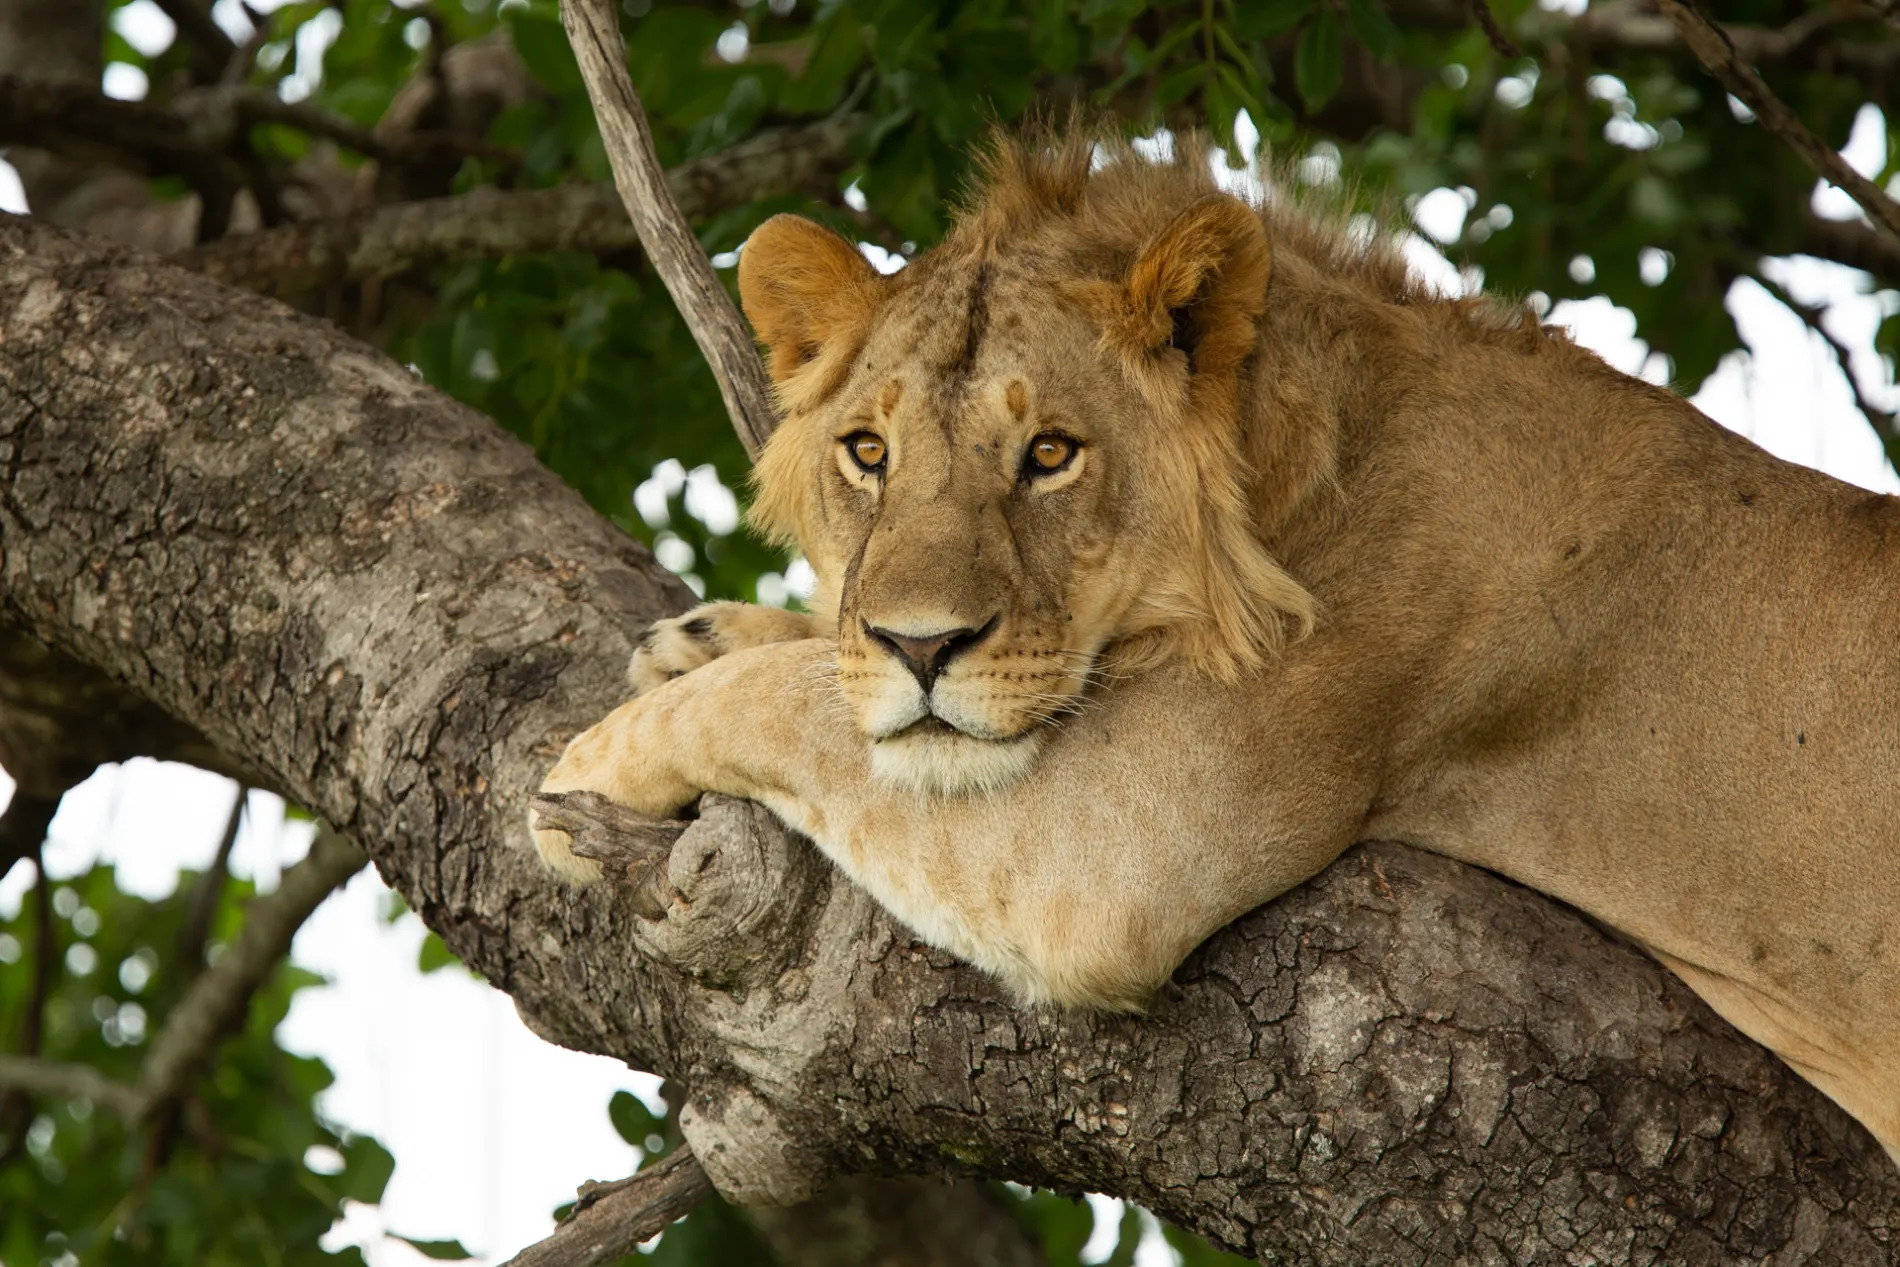 LIon in tree with arm